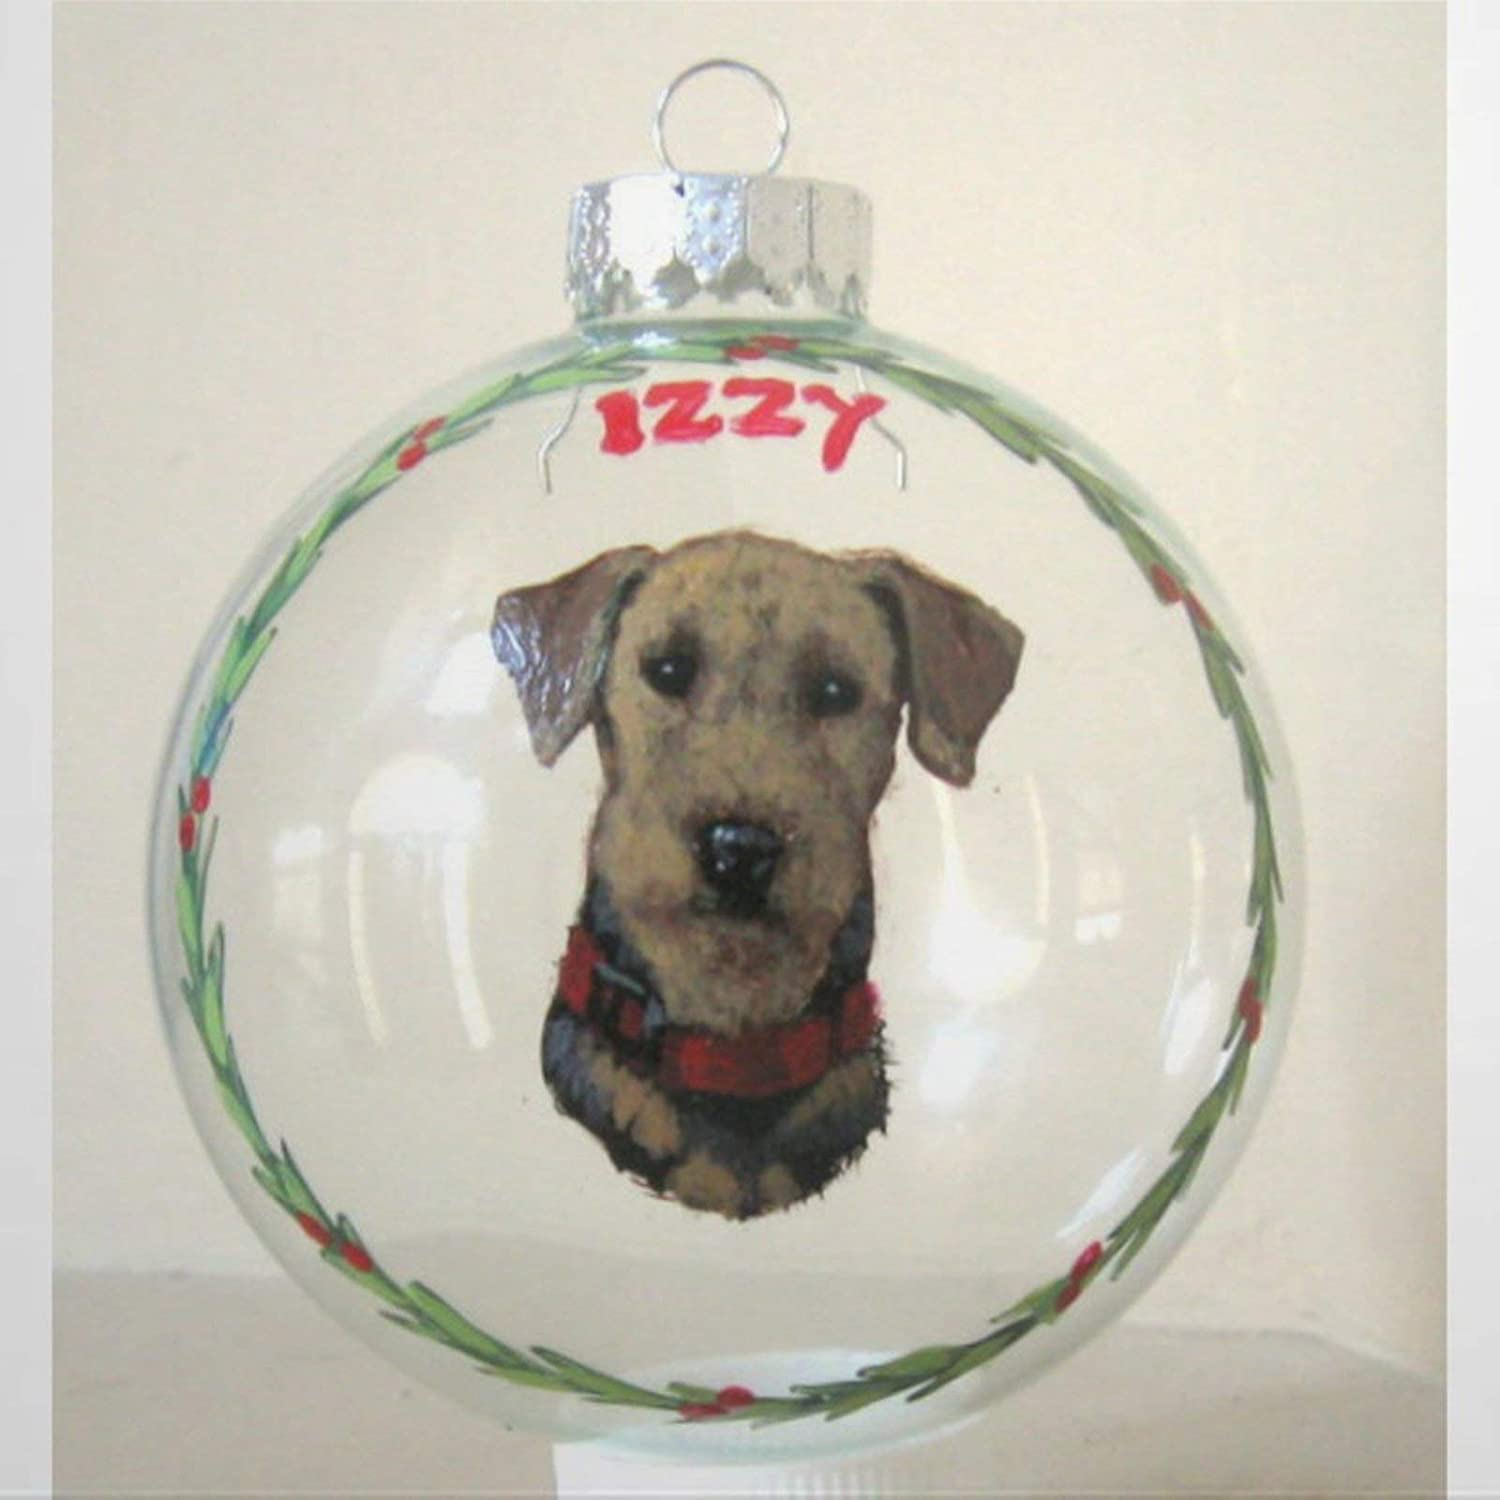 DONL9BAUER Christmas Balls Ornaments Airedale, Pet Hanging Ball for Xmas Tree Dog Loss Memorial, Custom Pet Portrait, Shatterproof Christmas Decorations for Holiday Party